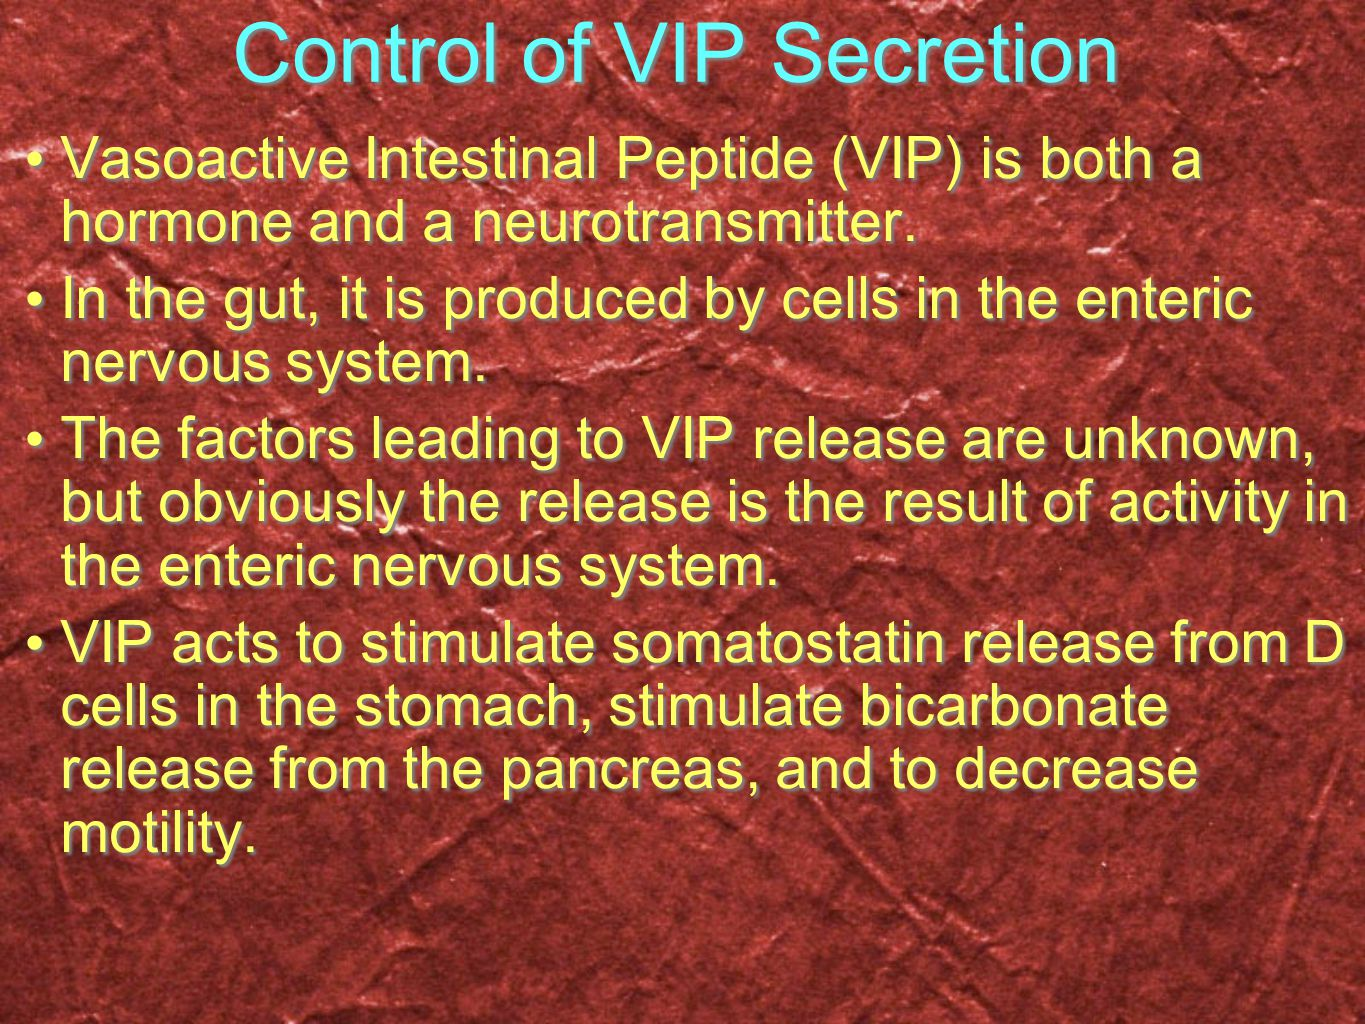 Control of VIP Secretion Vasoactive Intestinal Peptide (VIP) is both a hormone and a neurotransmitter. In the gut, it is produced by cells in the ente